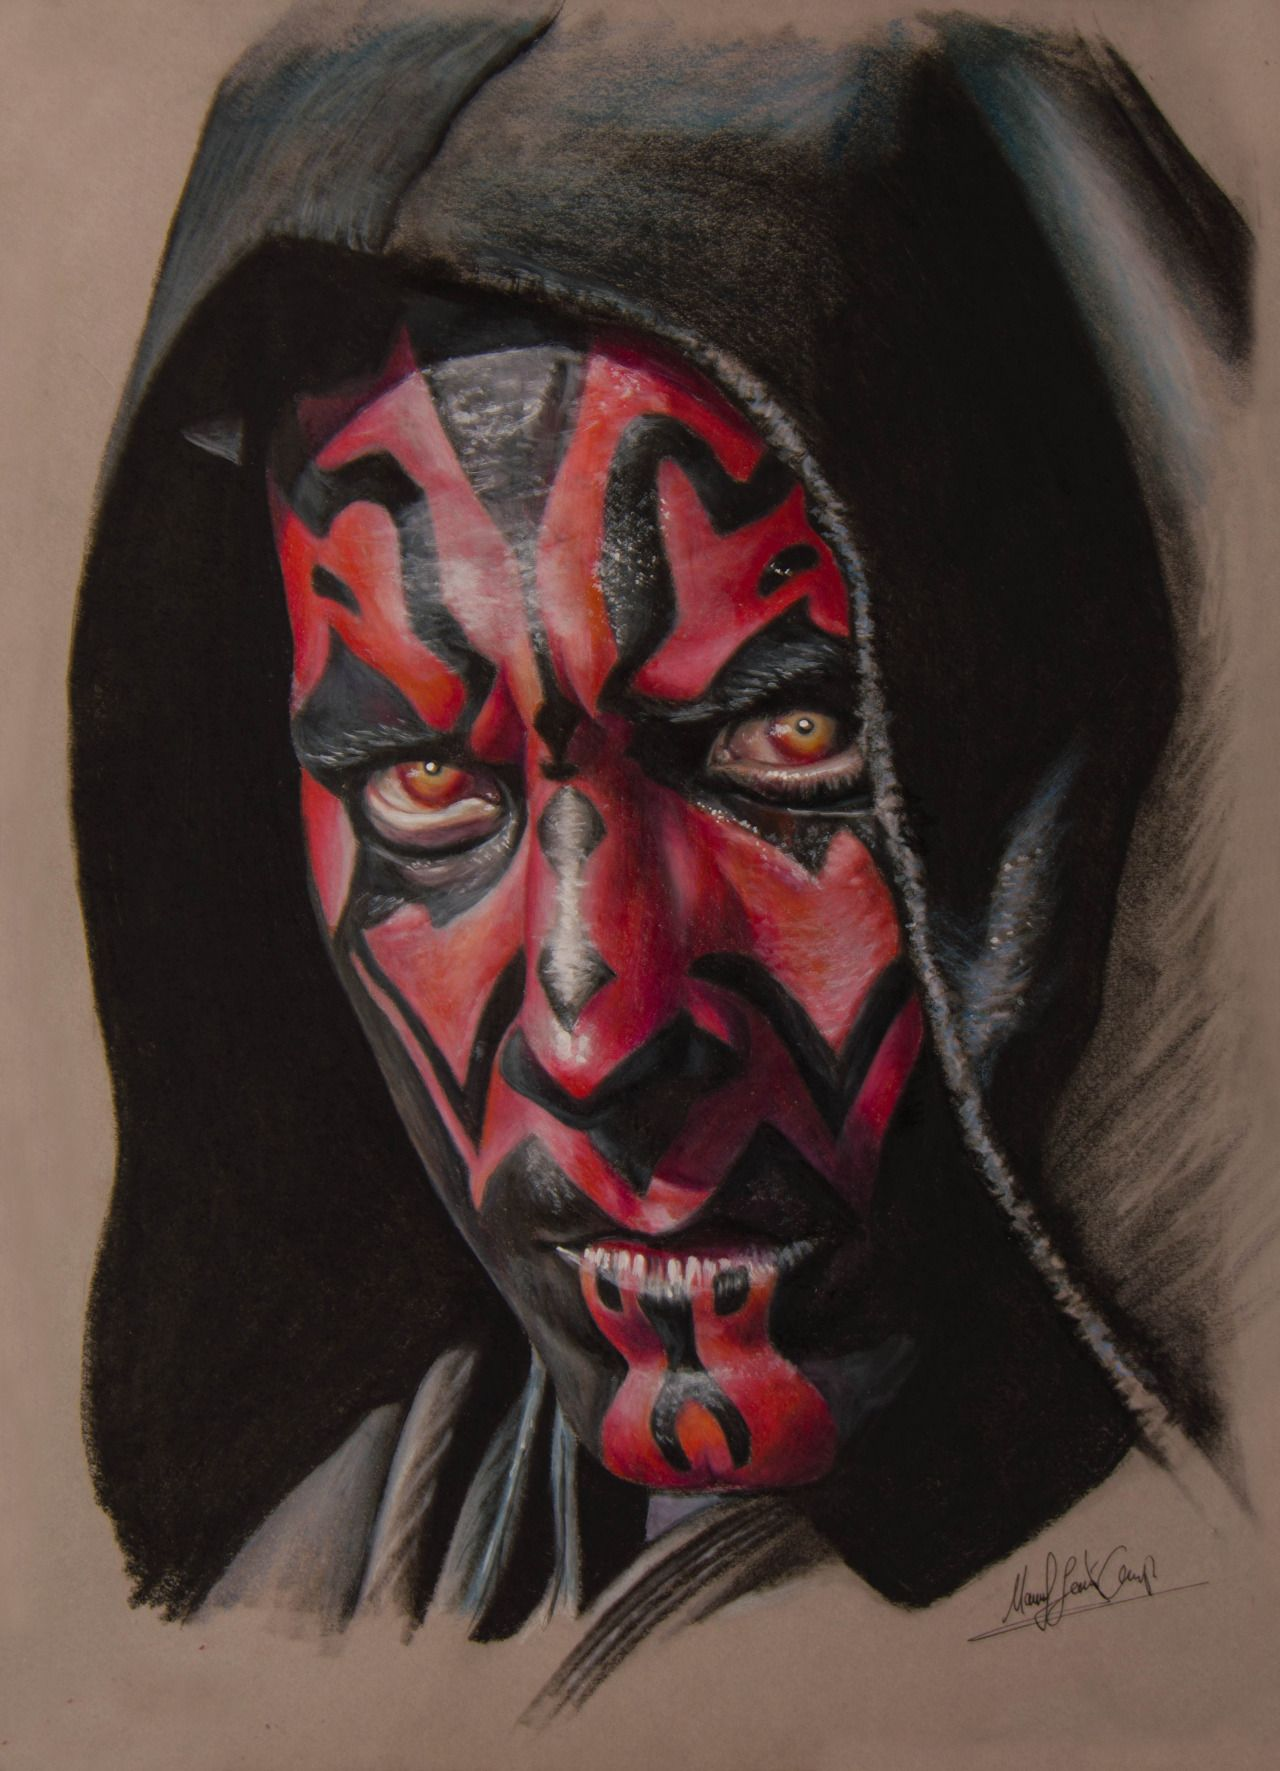 manuelj-art:   Darth Maul Drawing by Zaxer_art. ... - Only you could be so bold